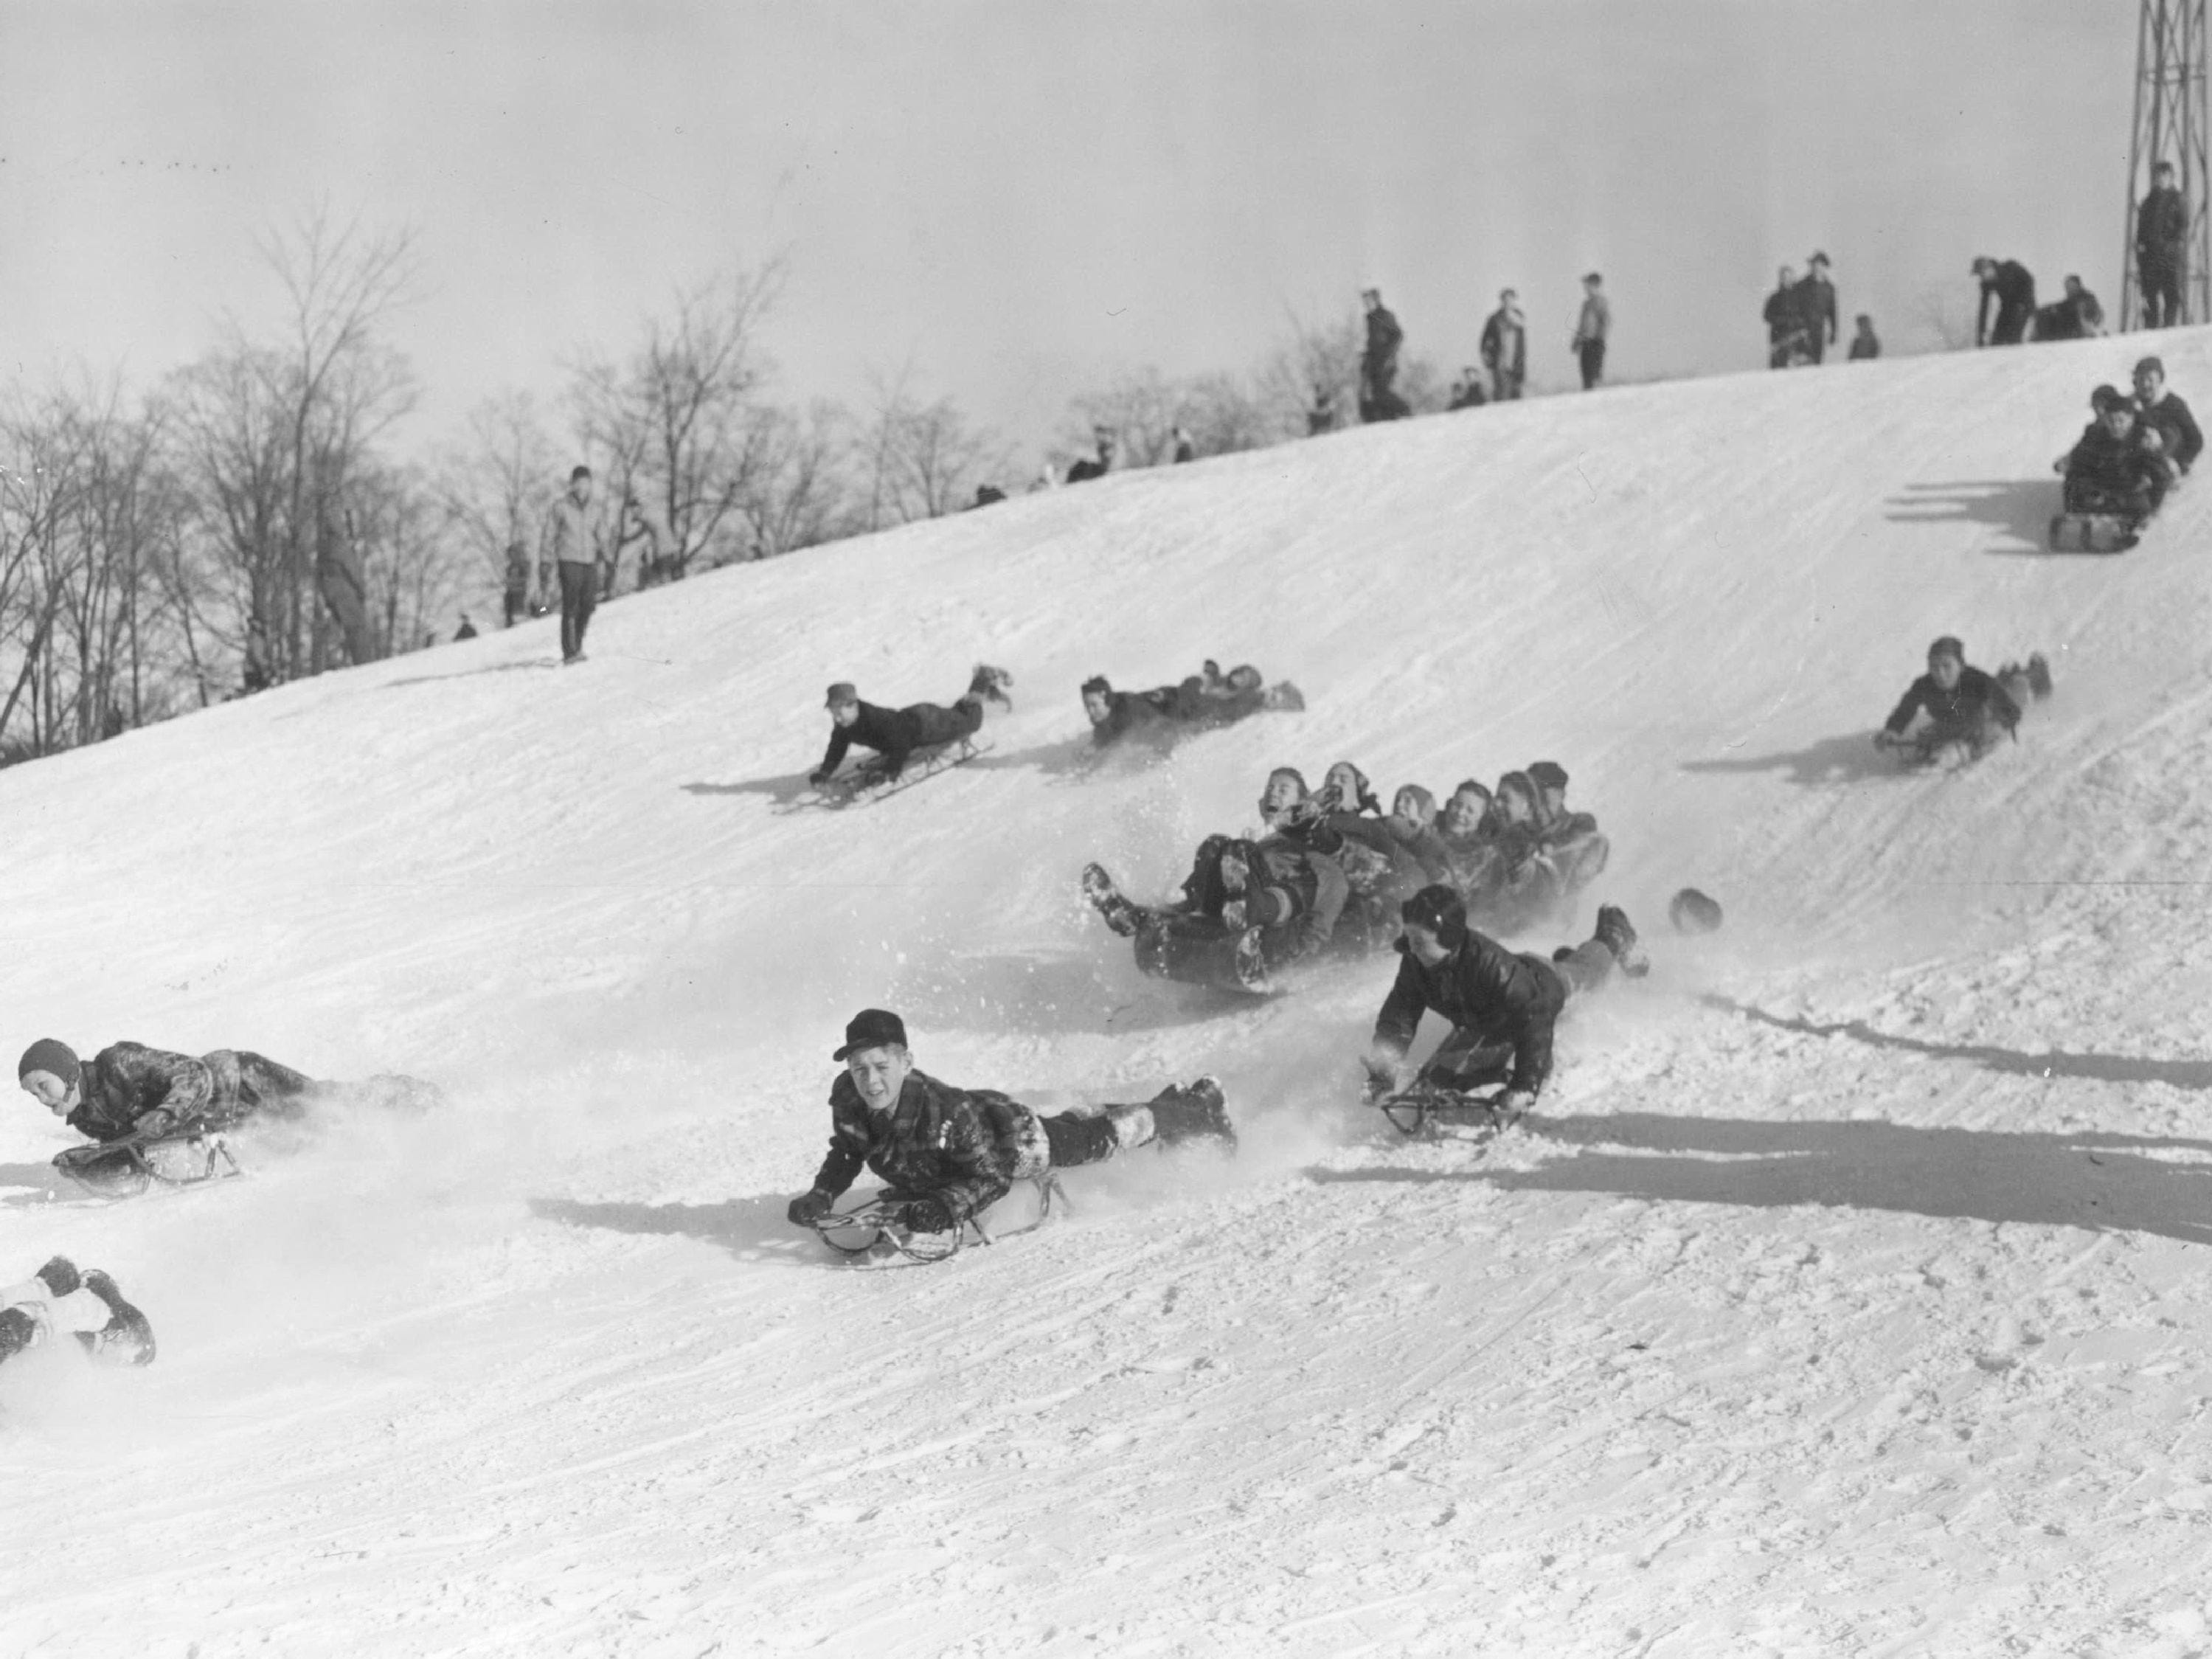 Youngsters on sleds and toboggans  sail down the hill at Rouge Park in Detroit.